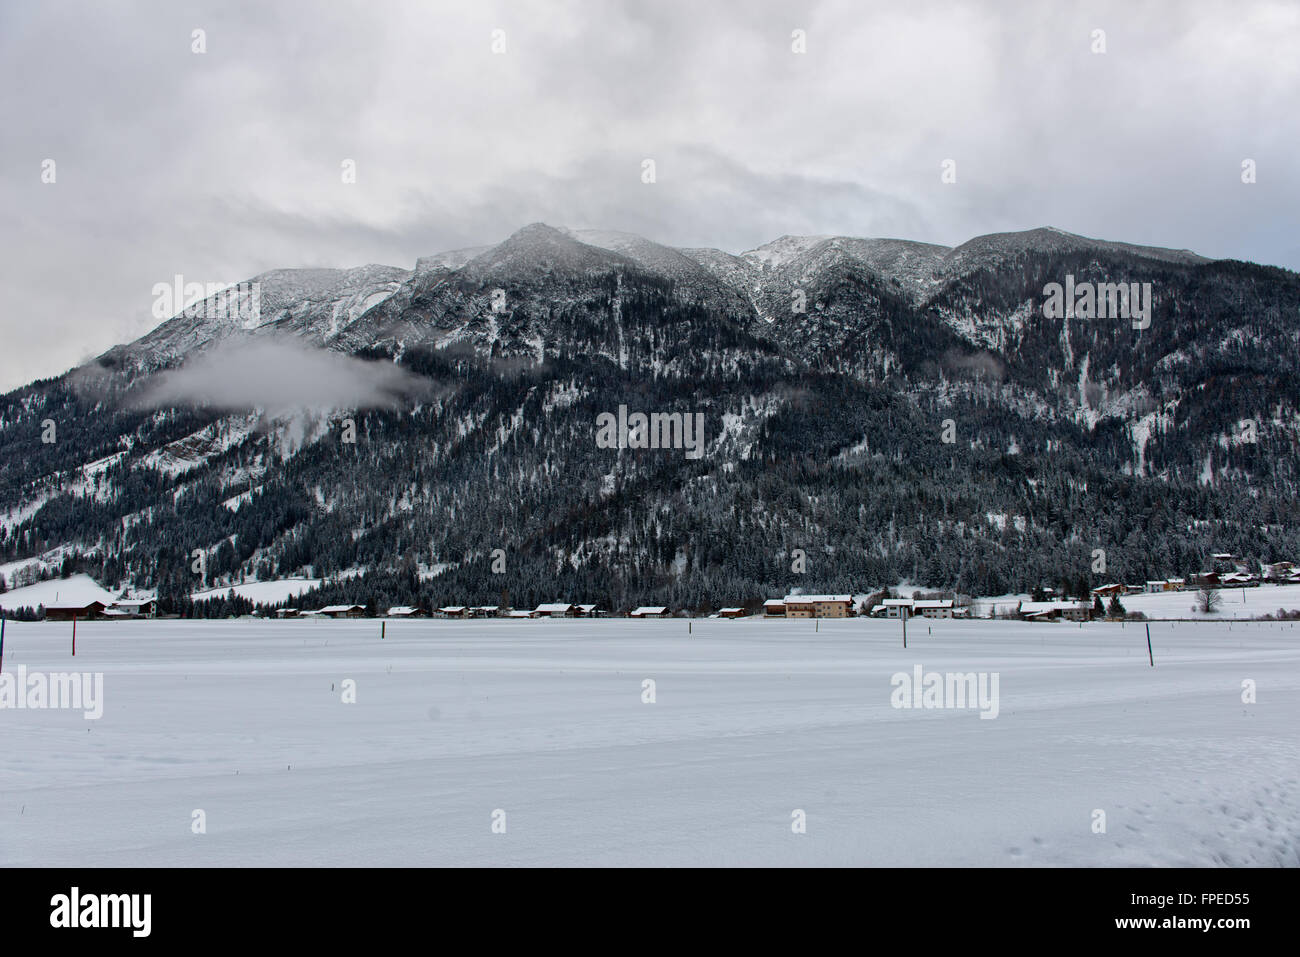 Cross country skiing resort in Achenkirch, Austria with beautiful large mountain in background under overcast sky - Stock Image